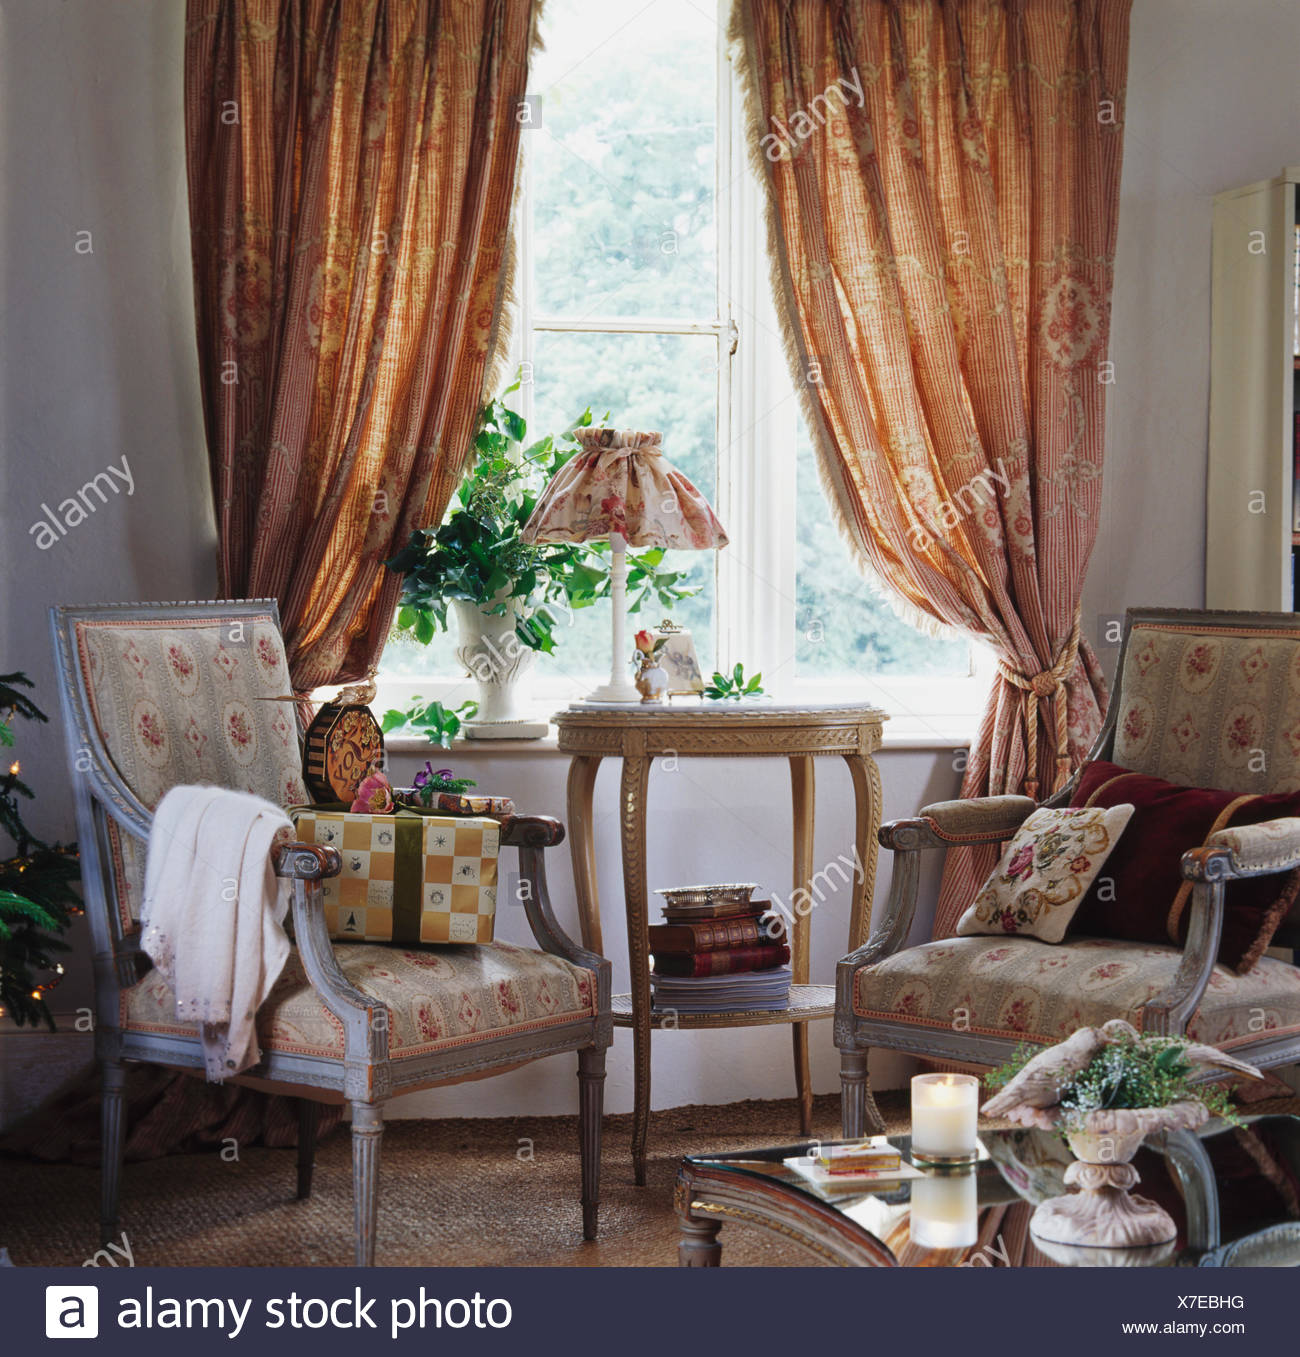 Tremendous Floral Armchairs In Front Of Window With Patterned Heavy Download Free Architecture Designs Scobabritishbridgeorg